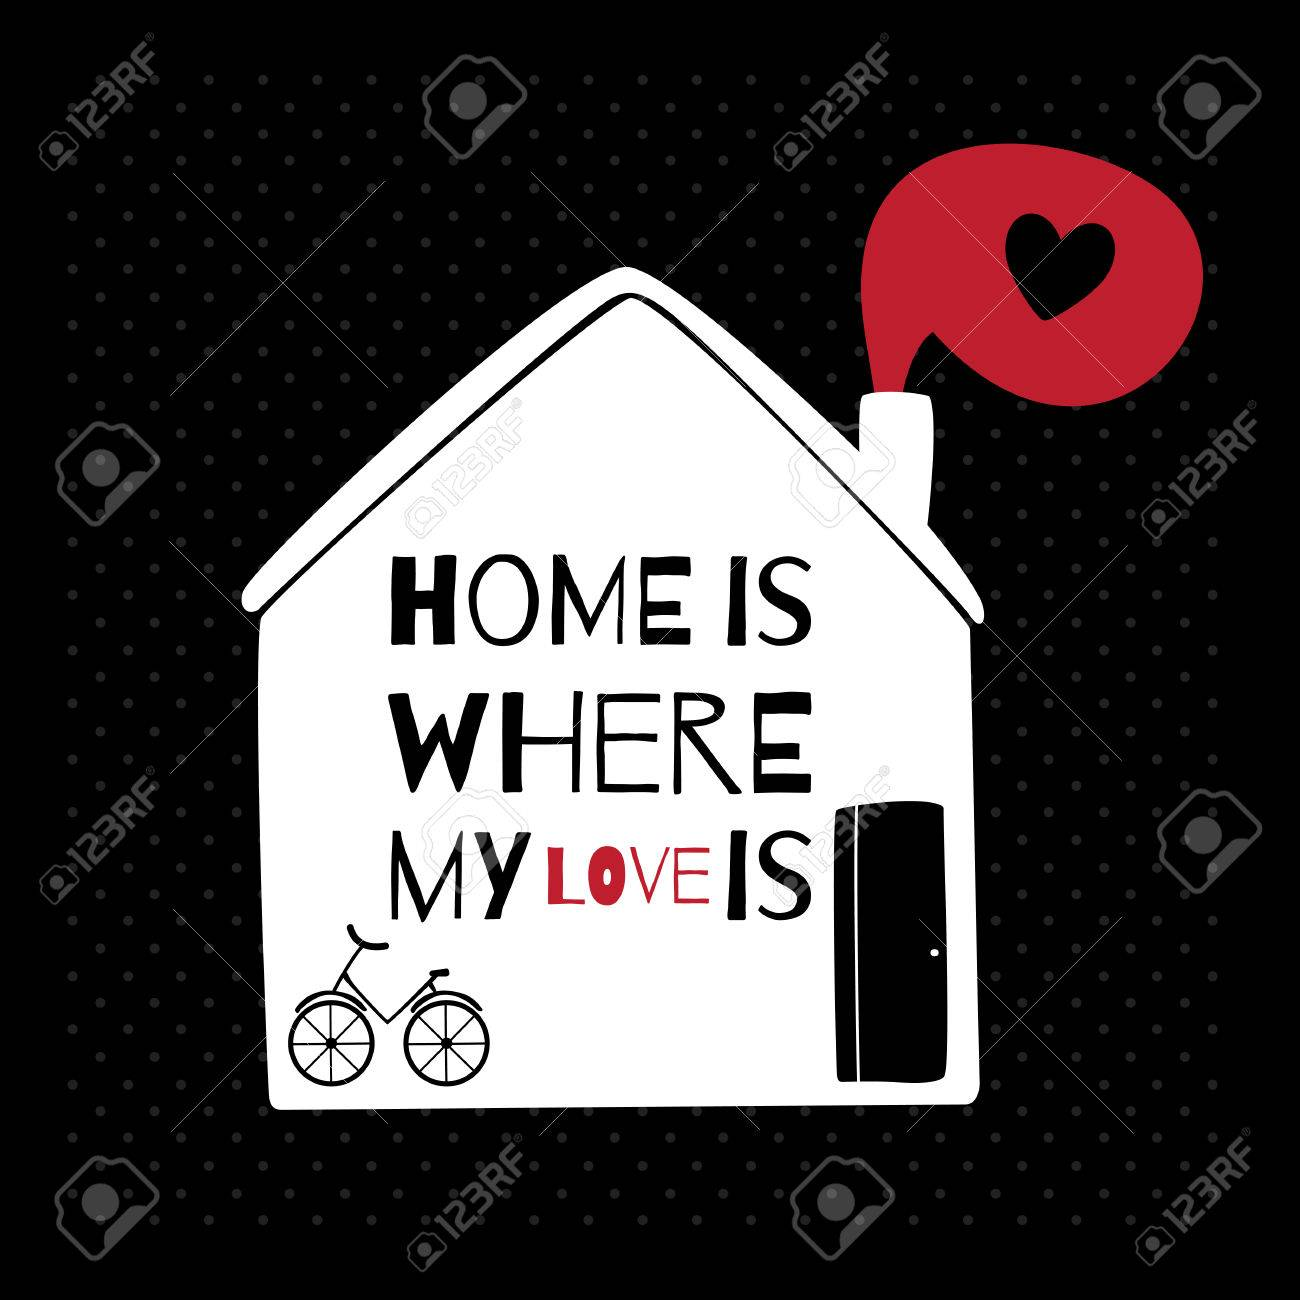 Romantic Greeting Card With Quote About Home And Love Royalty Free Cliparts Vectors And Stock Illustration Image 41185501